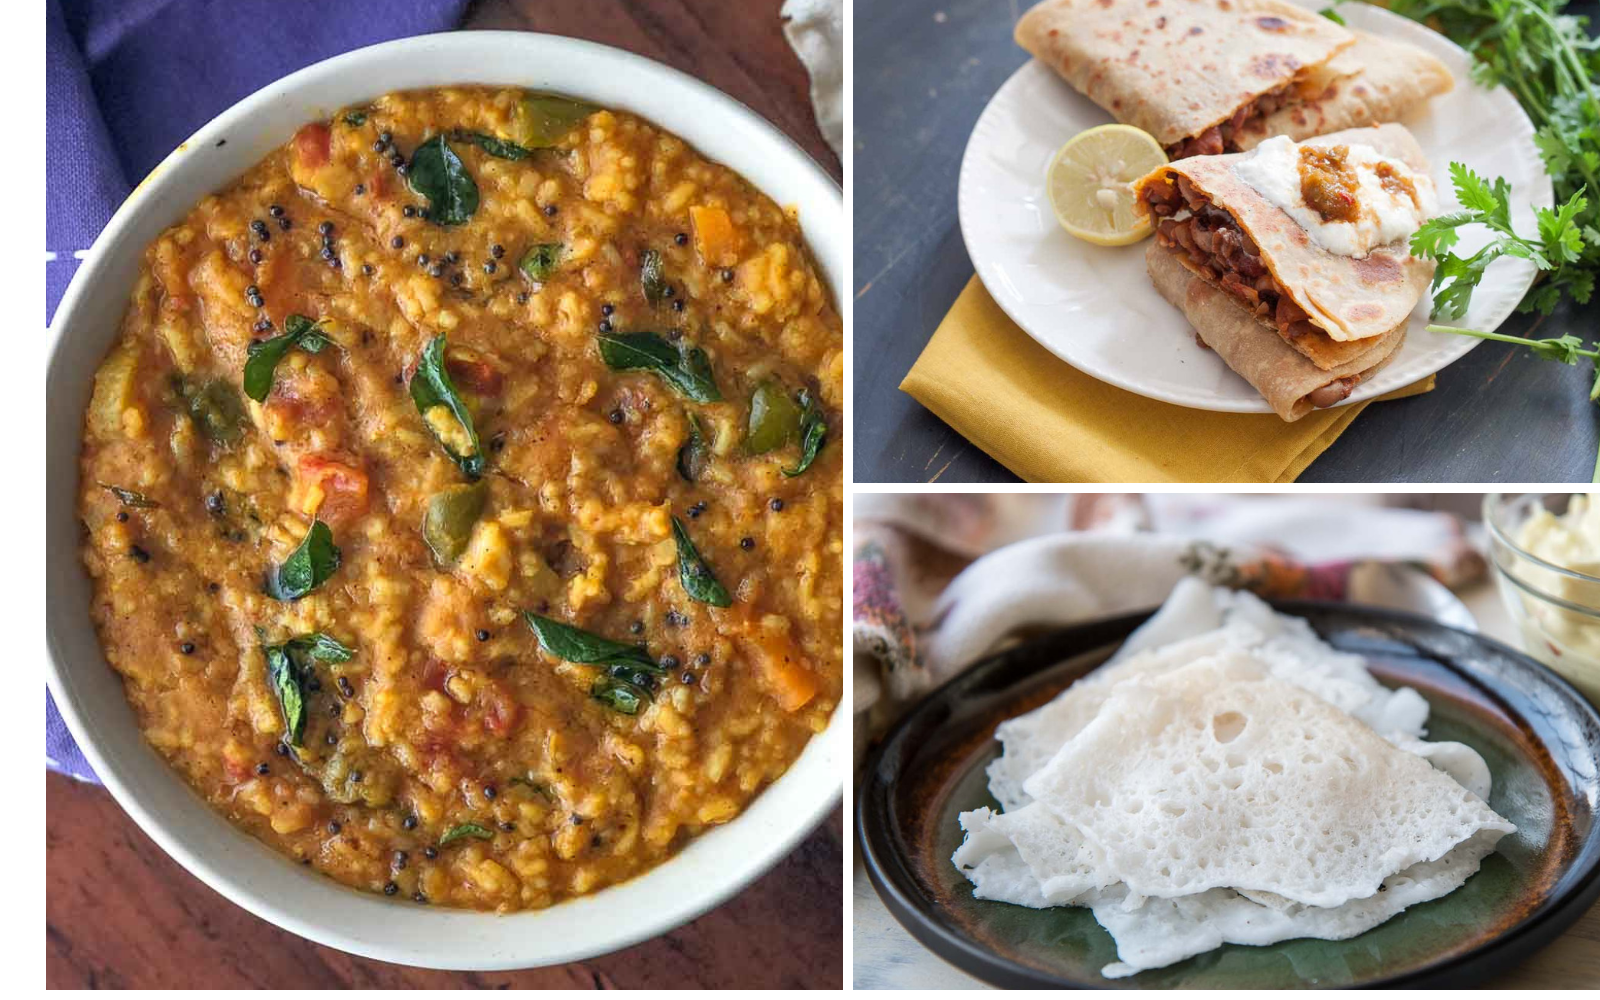 Kids Lunch box Menu Plan-One Pot Sambar Rice, Lauki Tamatar Ki Sabzi & More